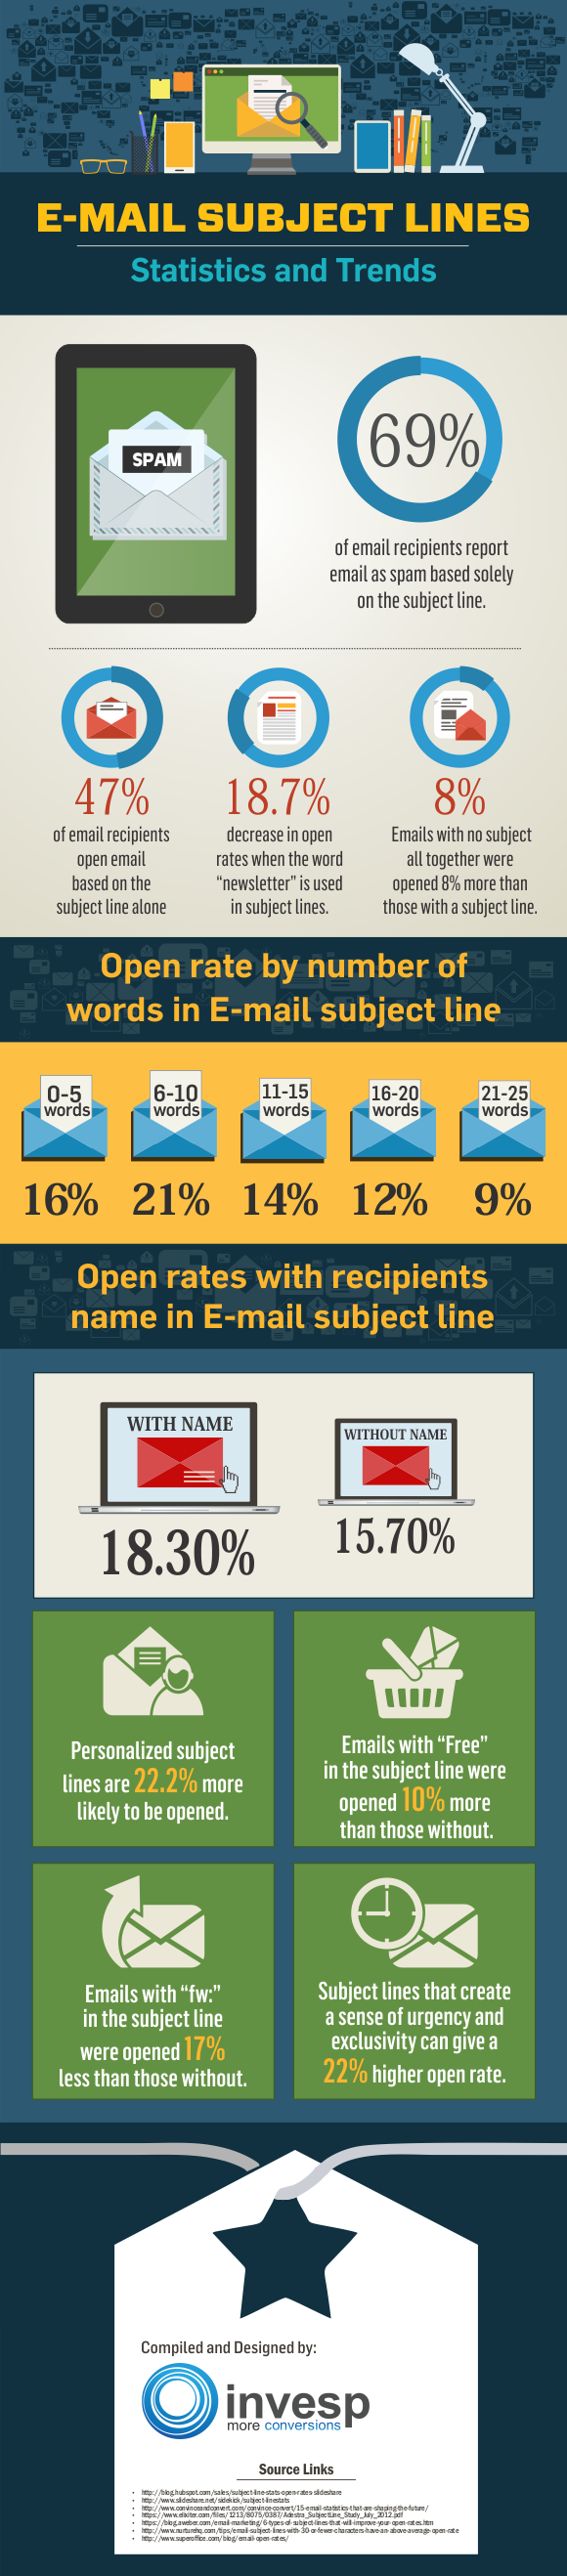 Understanding the Importance of E-mail Subject Lines [Infographic]